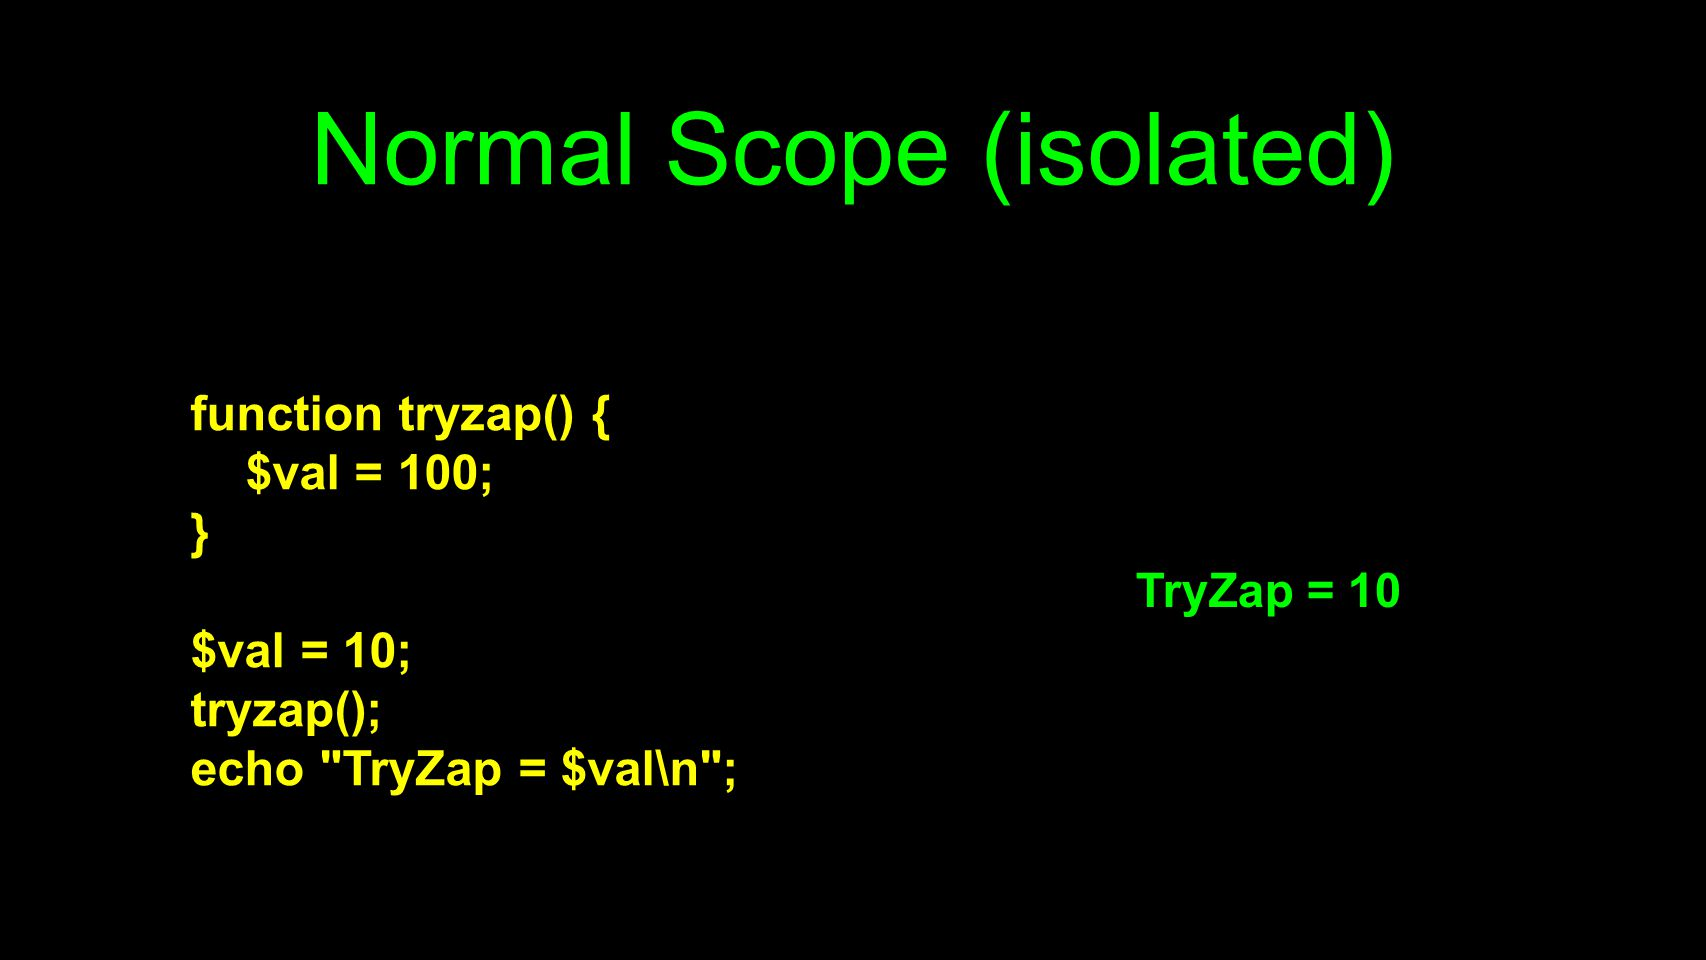 Normal Scope (isolated)